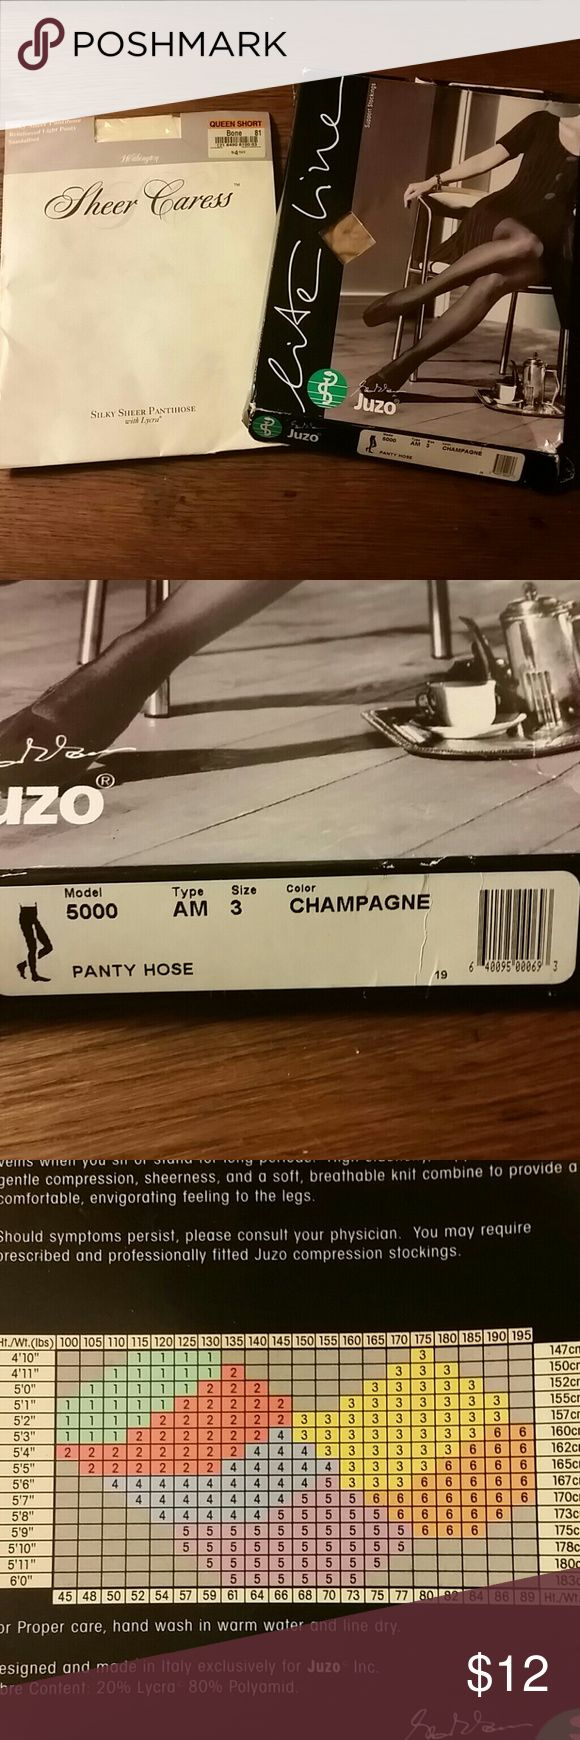 """Two NWT Queen Size Petite Hosiery One Juzo Lite line support stocking Pantyhose Model 5000 Type am Color Champagne Size 3 (4'10""""-5'6""""and 150-195lbs)   ONE Sheer Caress Worthington Silky sheer pantyhose Reinforced light panty Sandlefoot foot Color Bone Queen short 4'11""""-5'6"""" and 141-215lbs Worthington Intimates & Sleepwear Shapewear"""